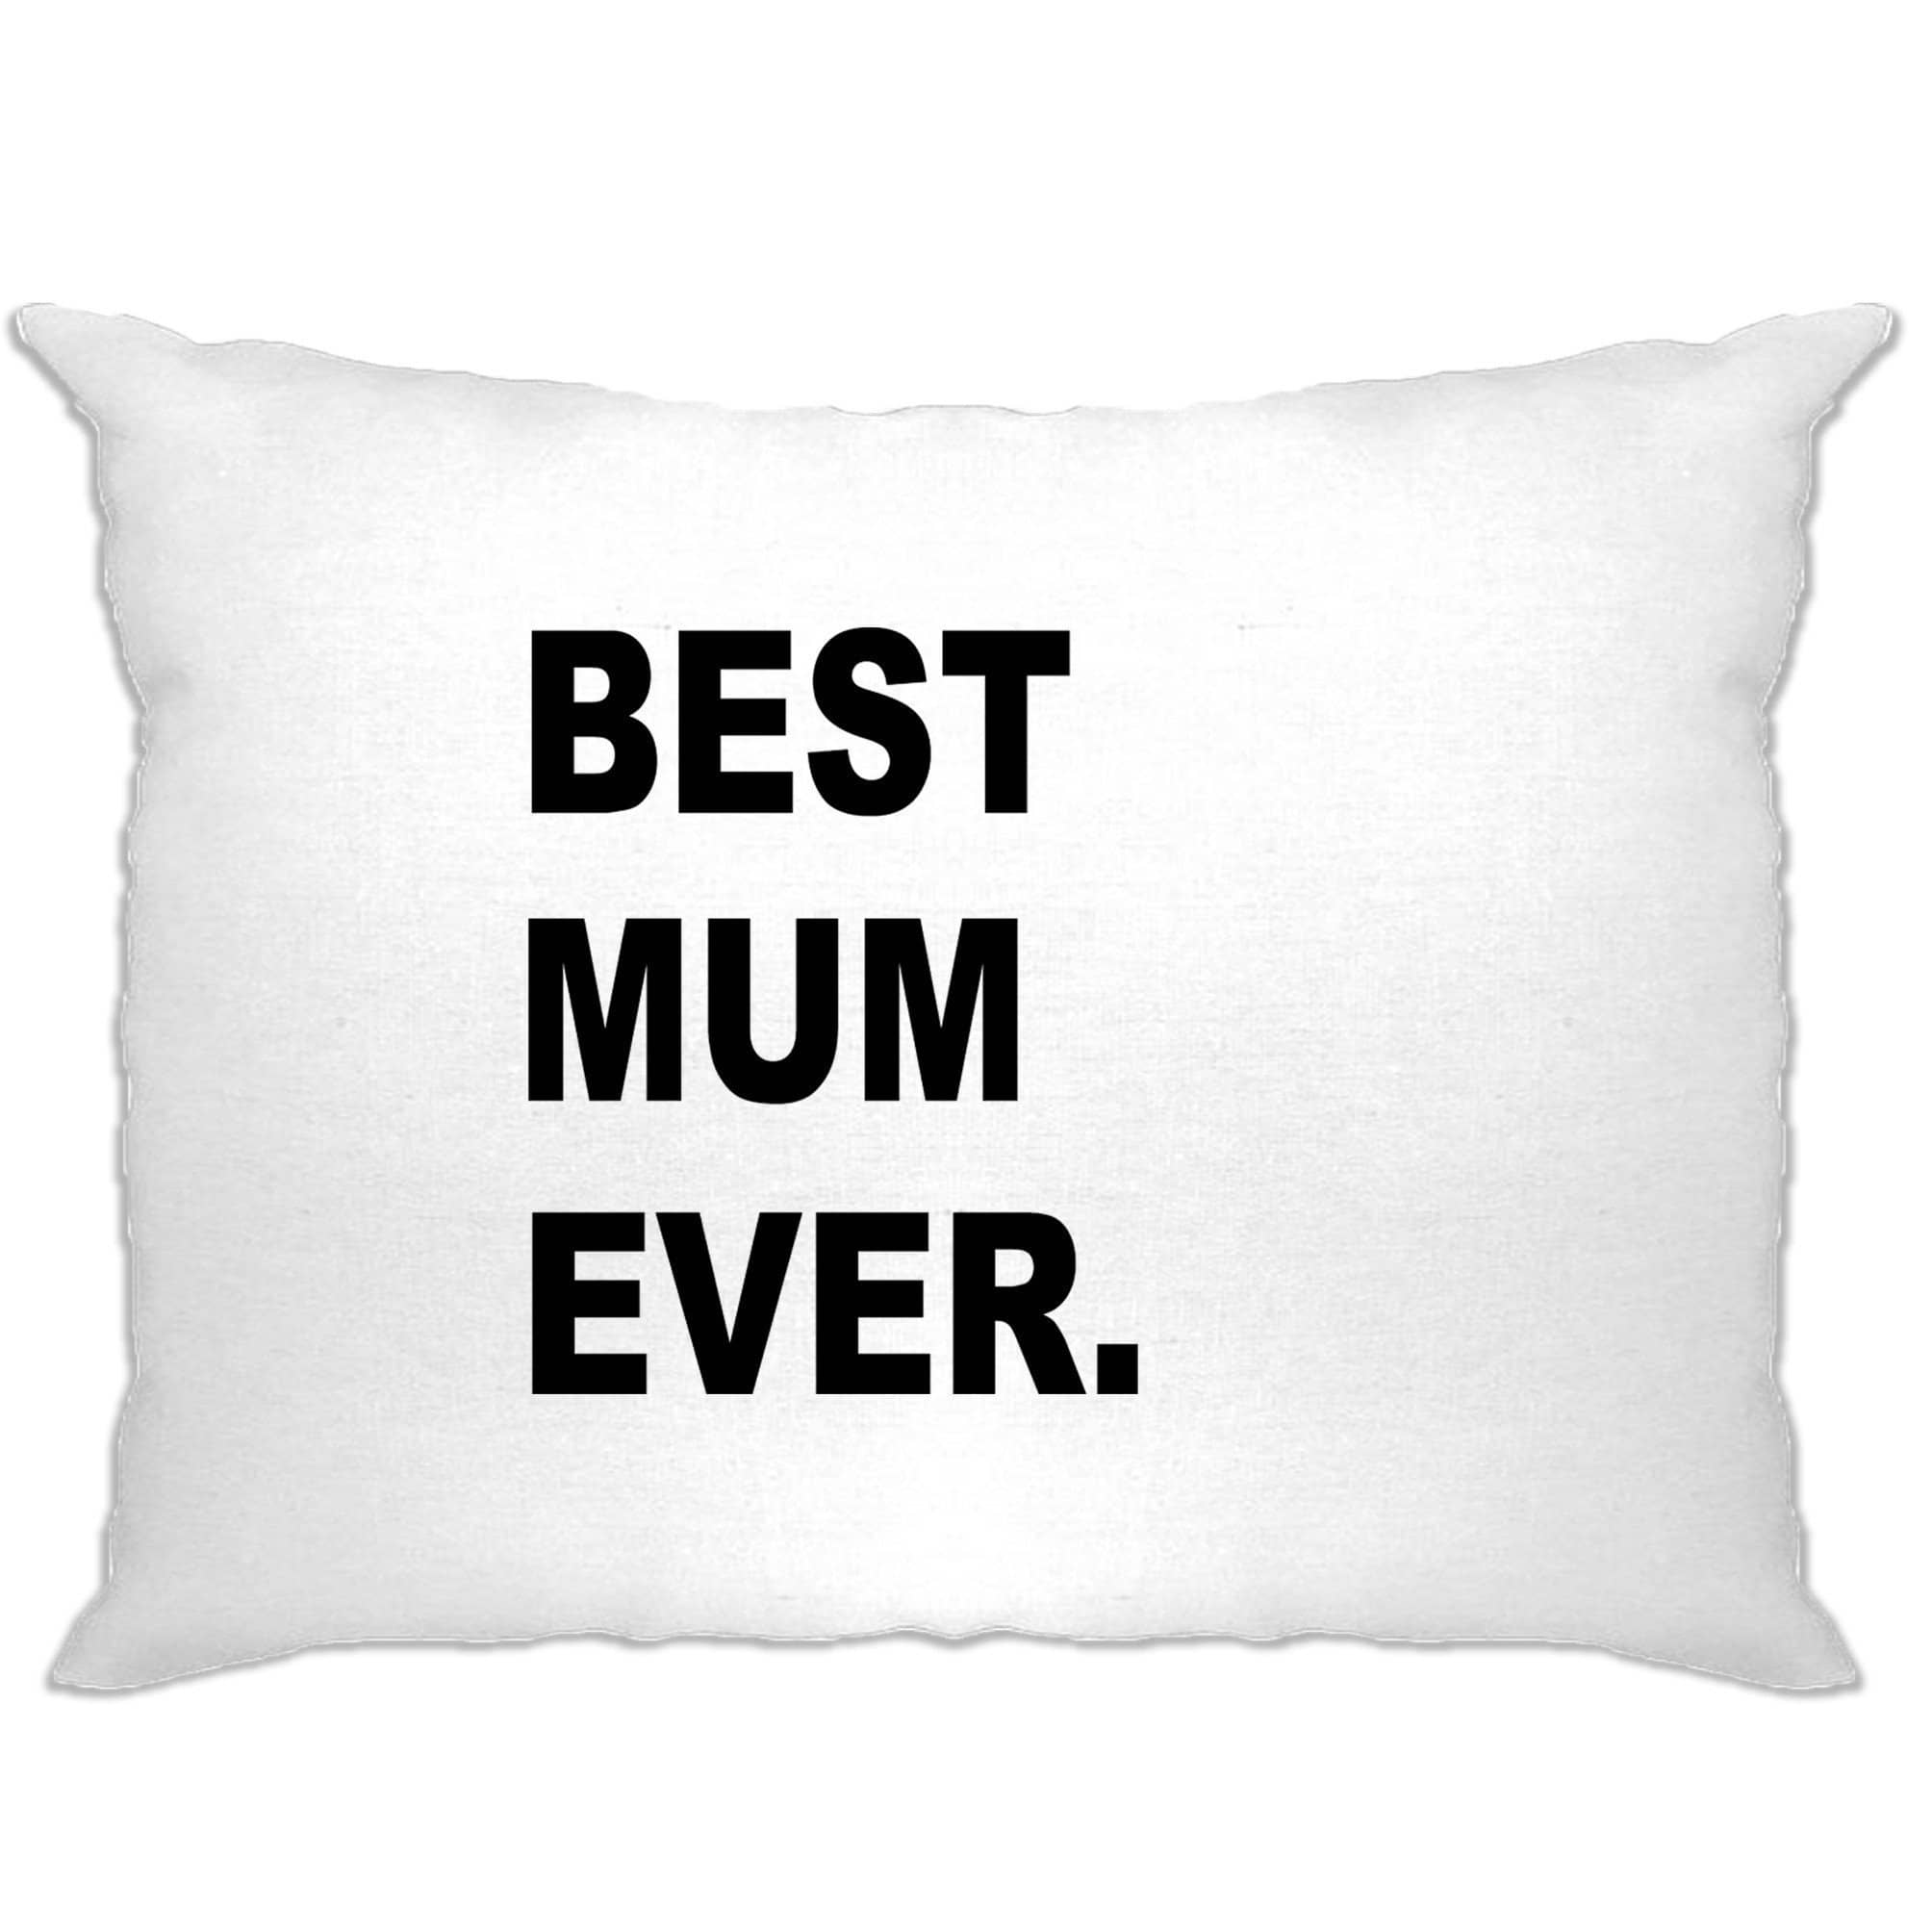 Best Mum Ever Pillow Case Parent Family Slogan